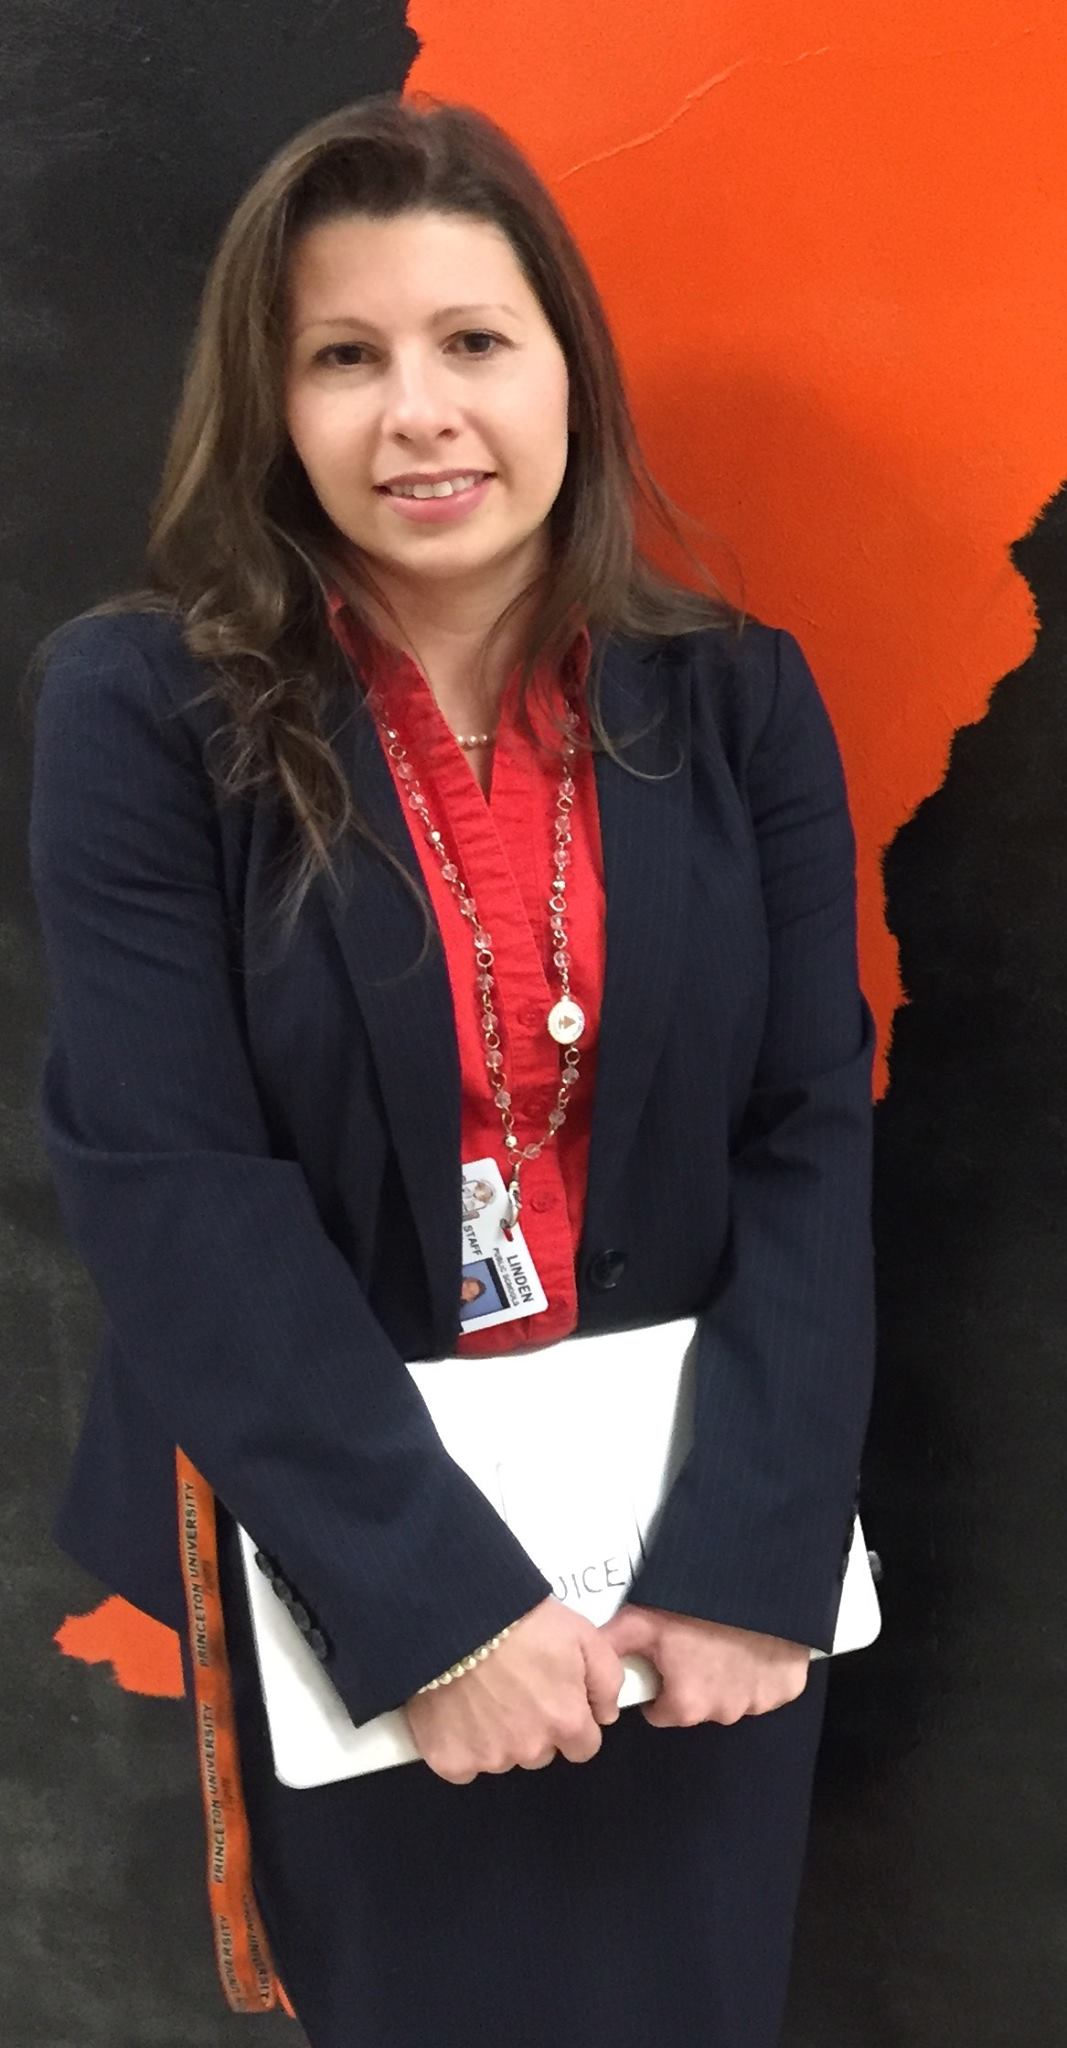 Mrs. Monica Goncalves has been recently selected as Linden High School's 2015-2016 Teacher of the Year